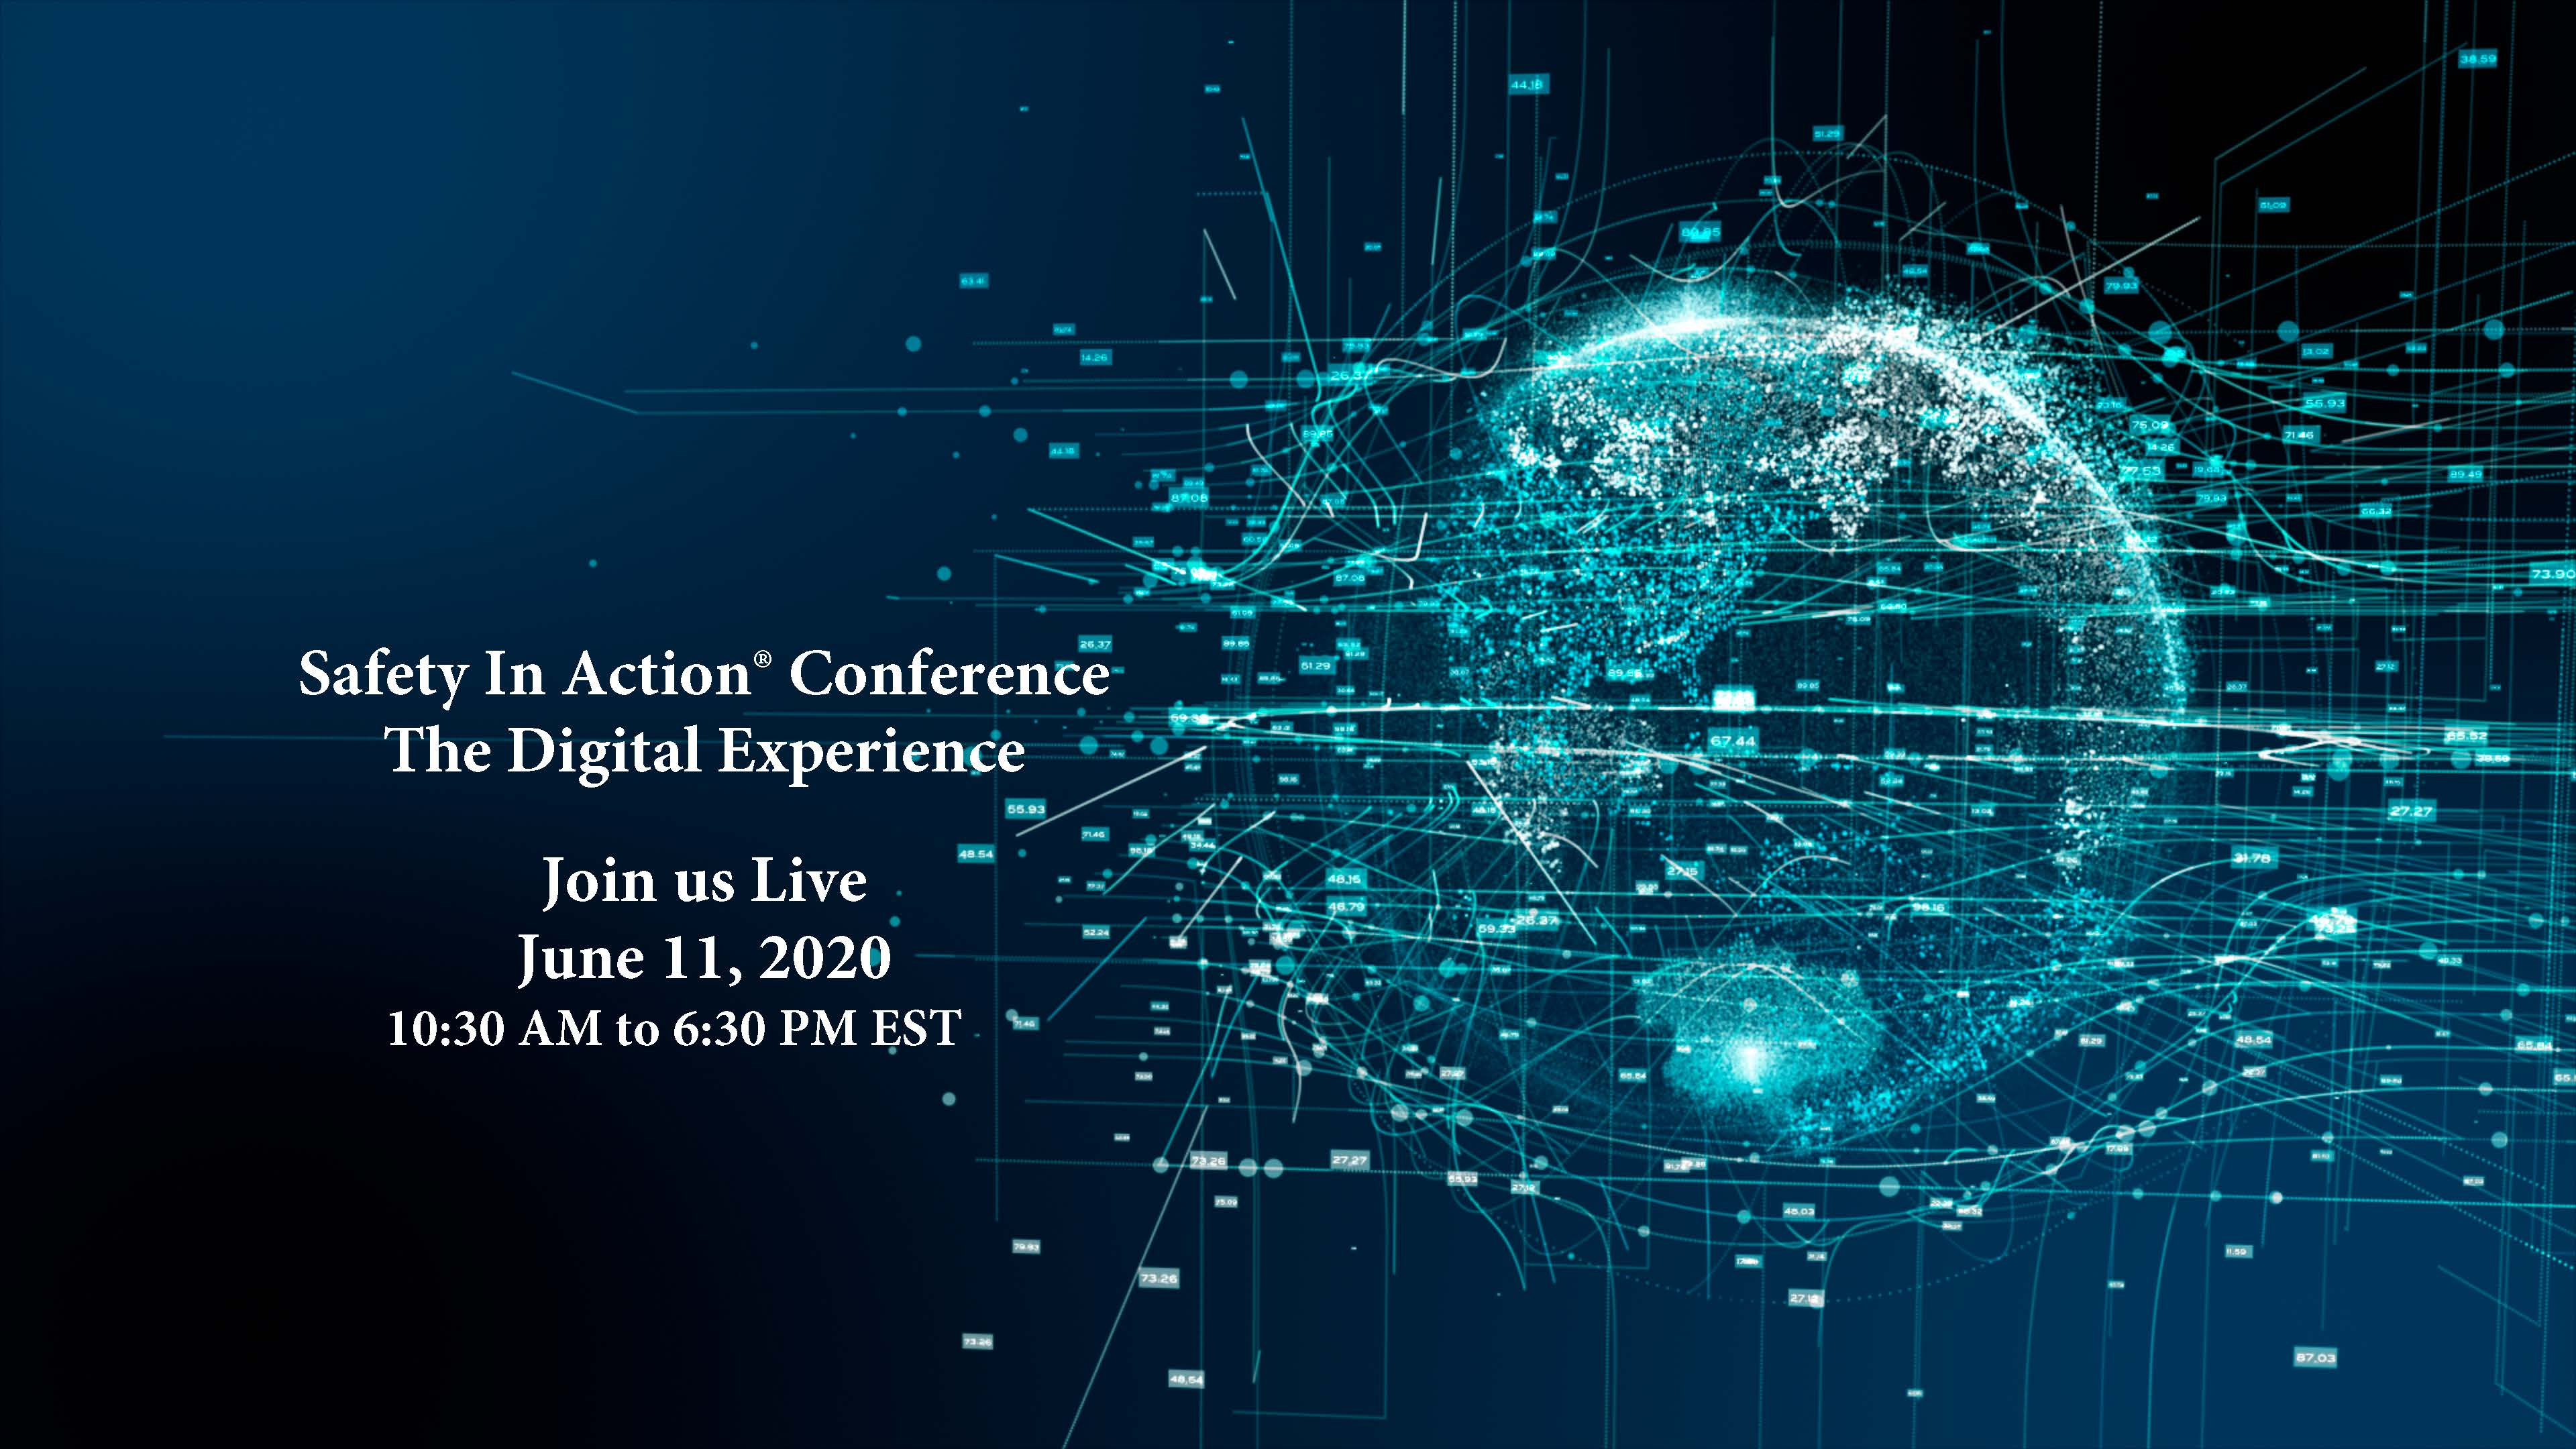 Safety In Action® Conference -The Digital Experience